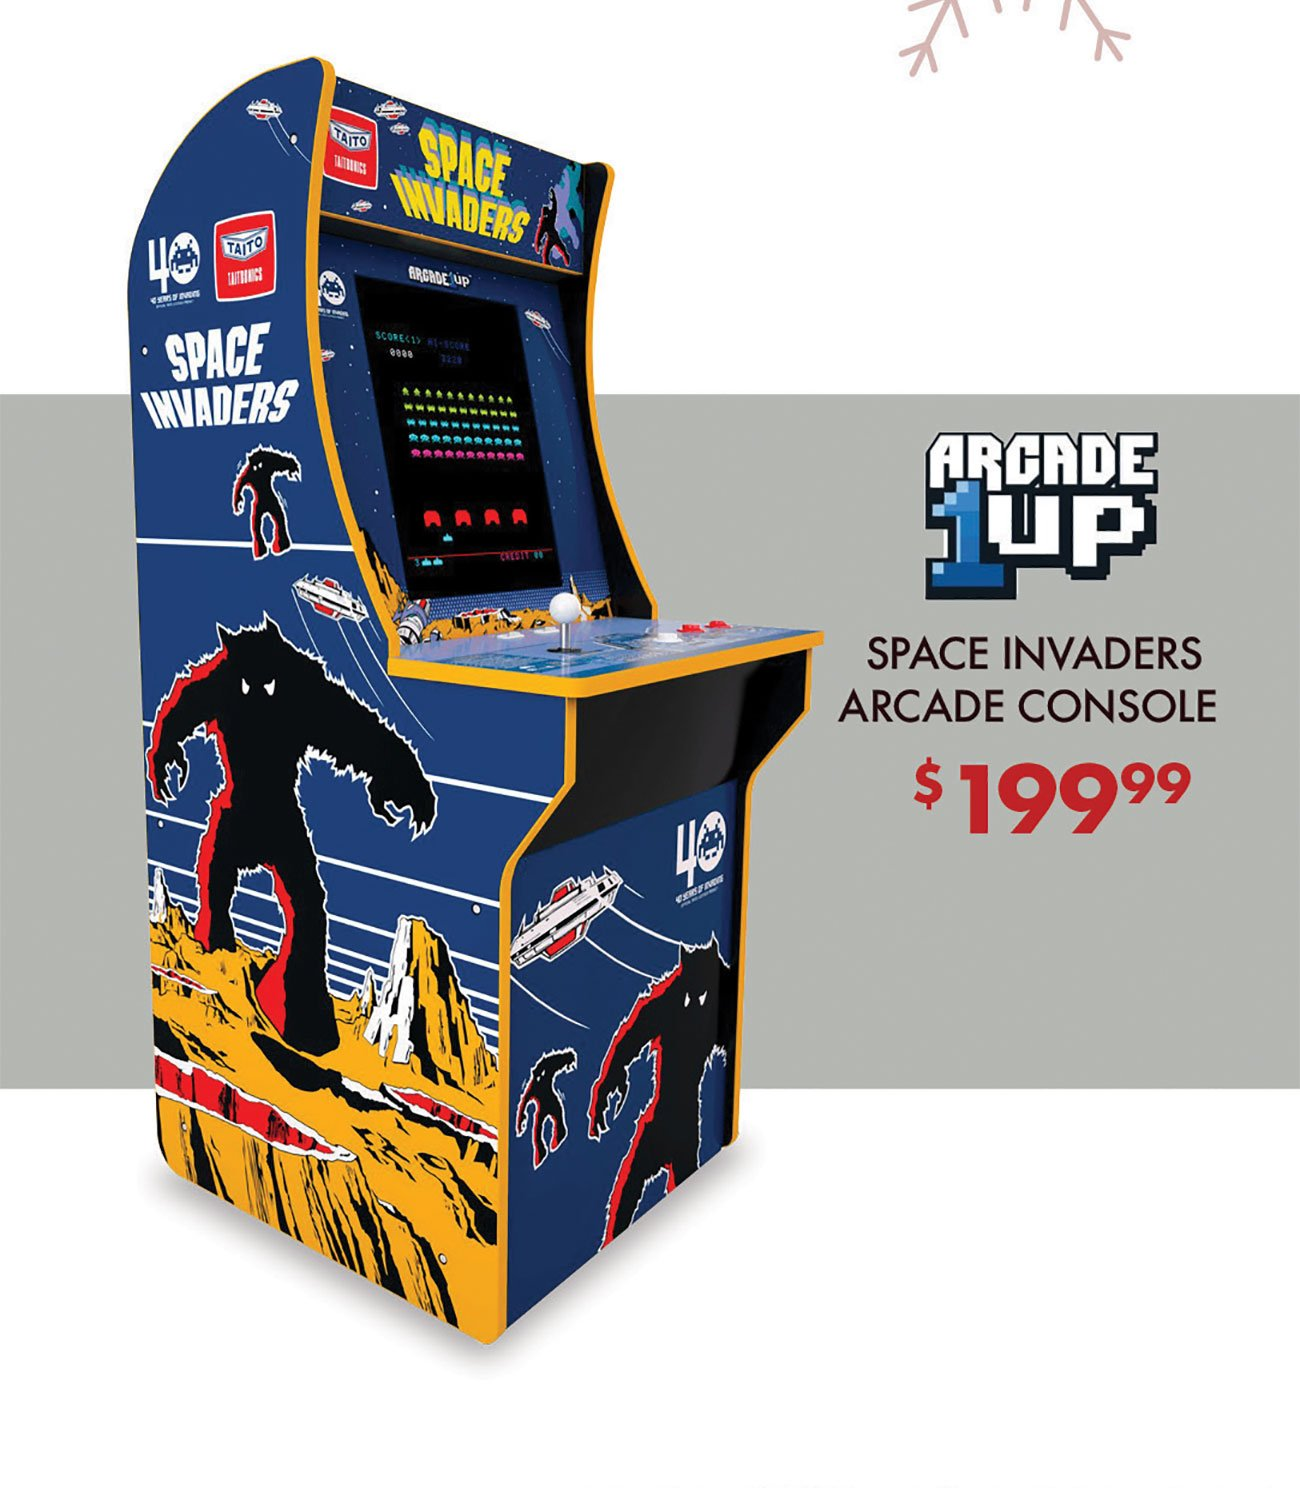 Arcade-1Up-Space-Invaders-Console